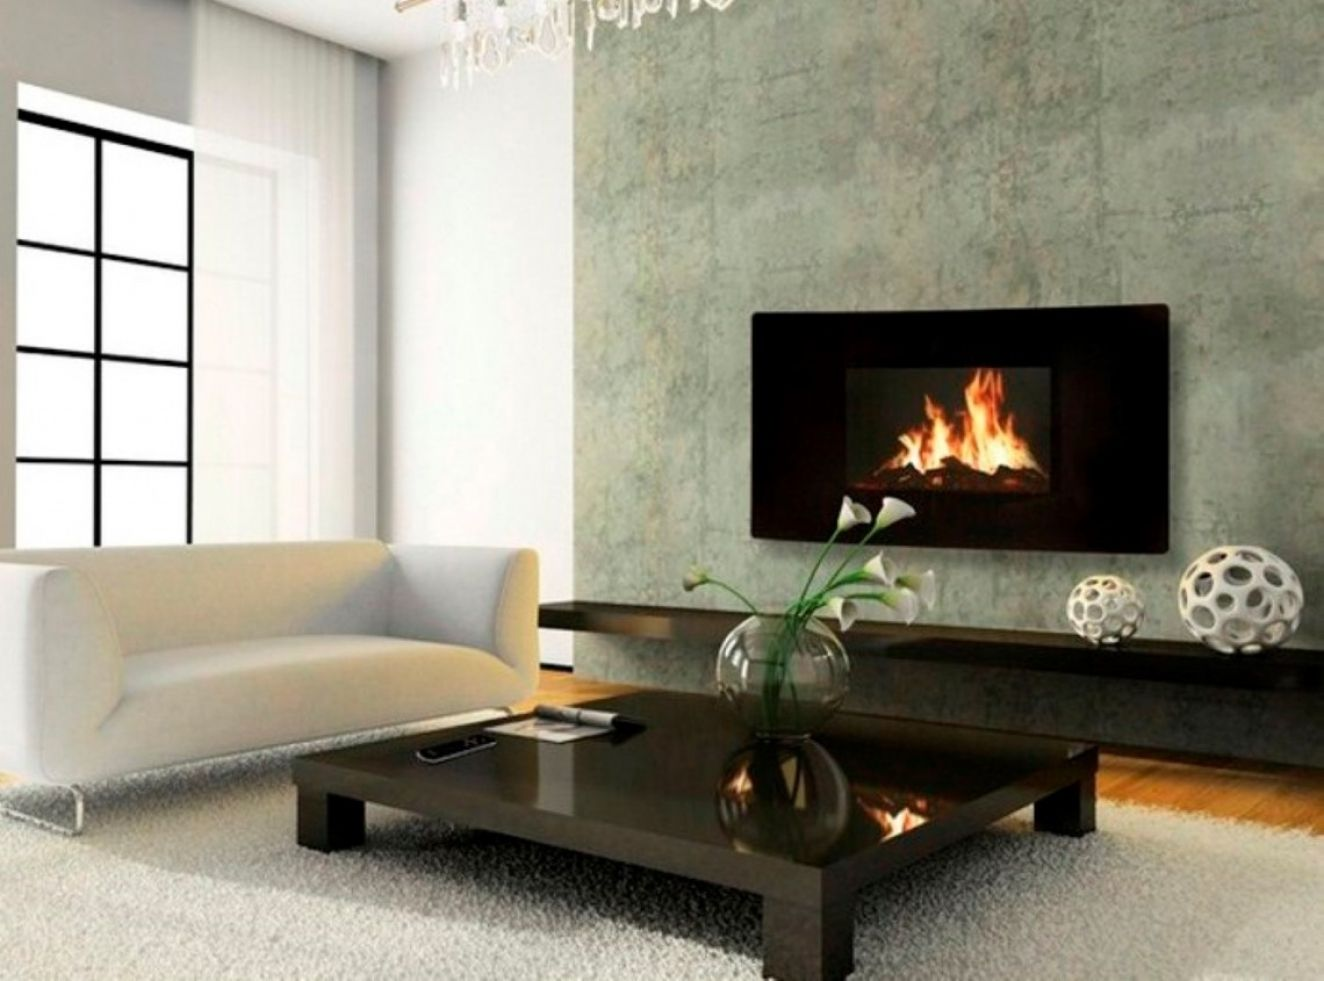 Small gas fireplace for bedroom - Small Electric Fireplace For Bedroom Simple Interior Design For Bedroom